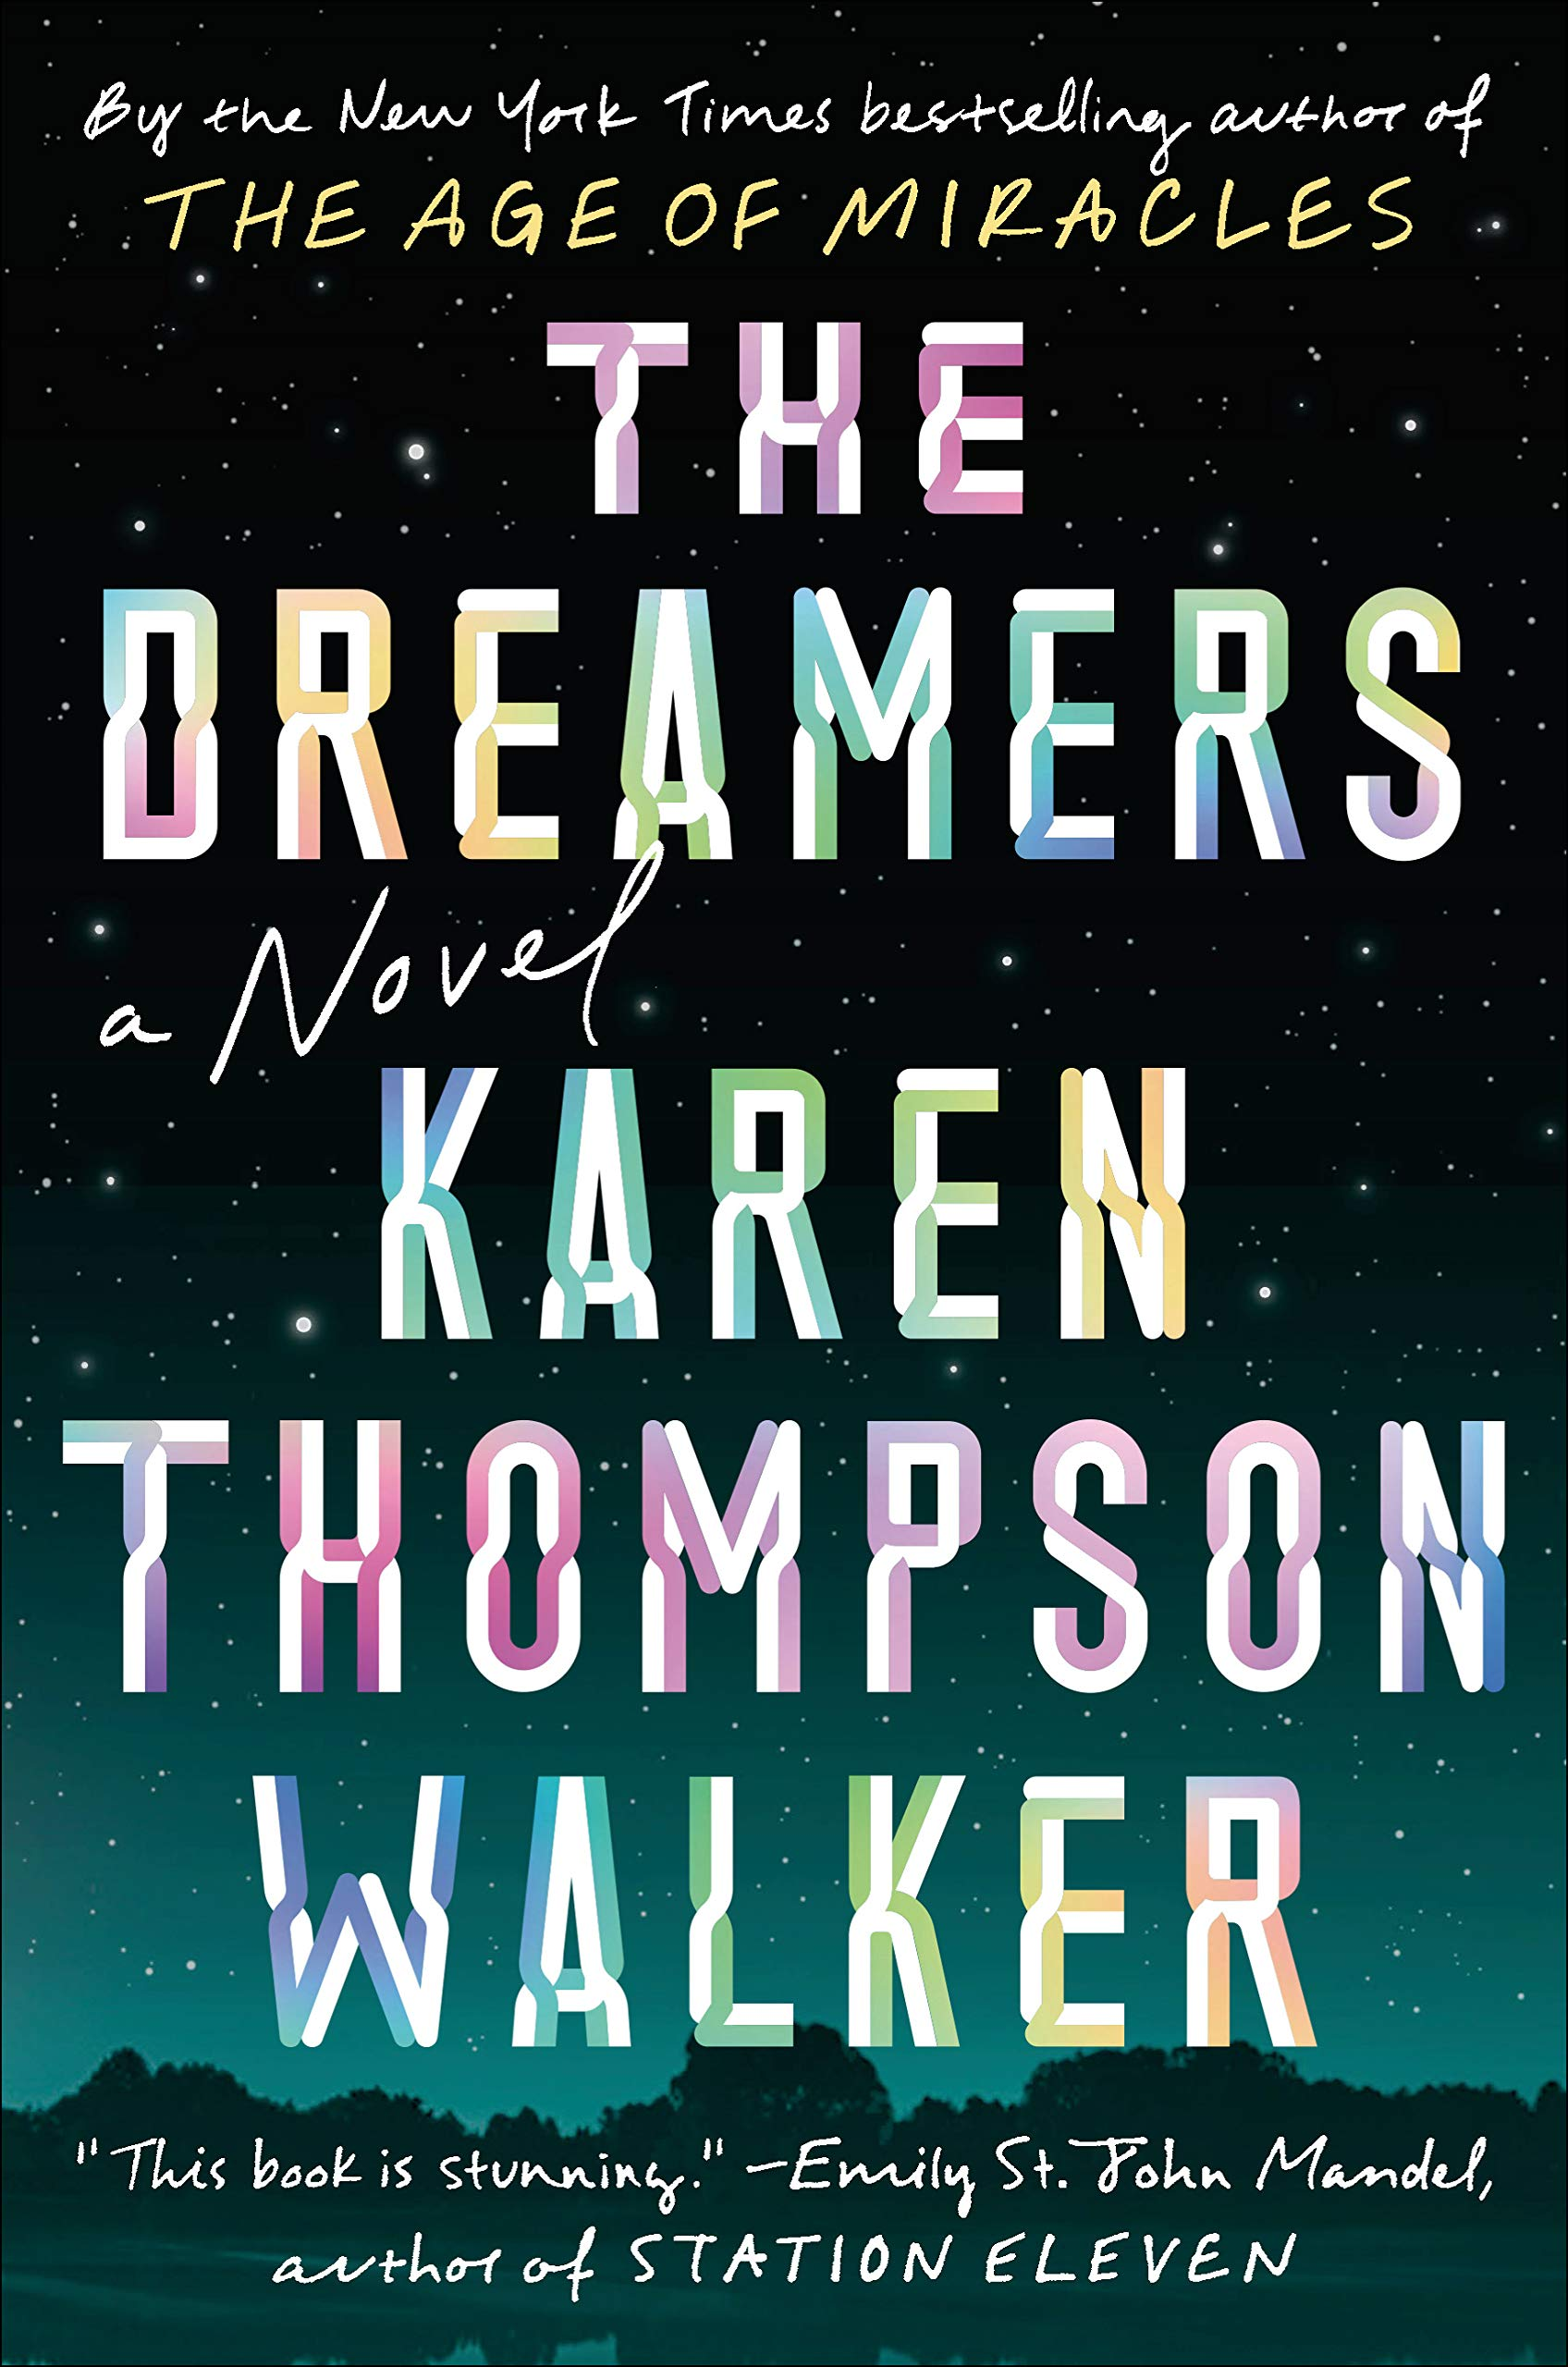 Highly Anticipated New Books for January 2019! | TBR Etc.